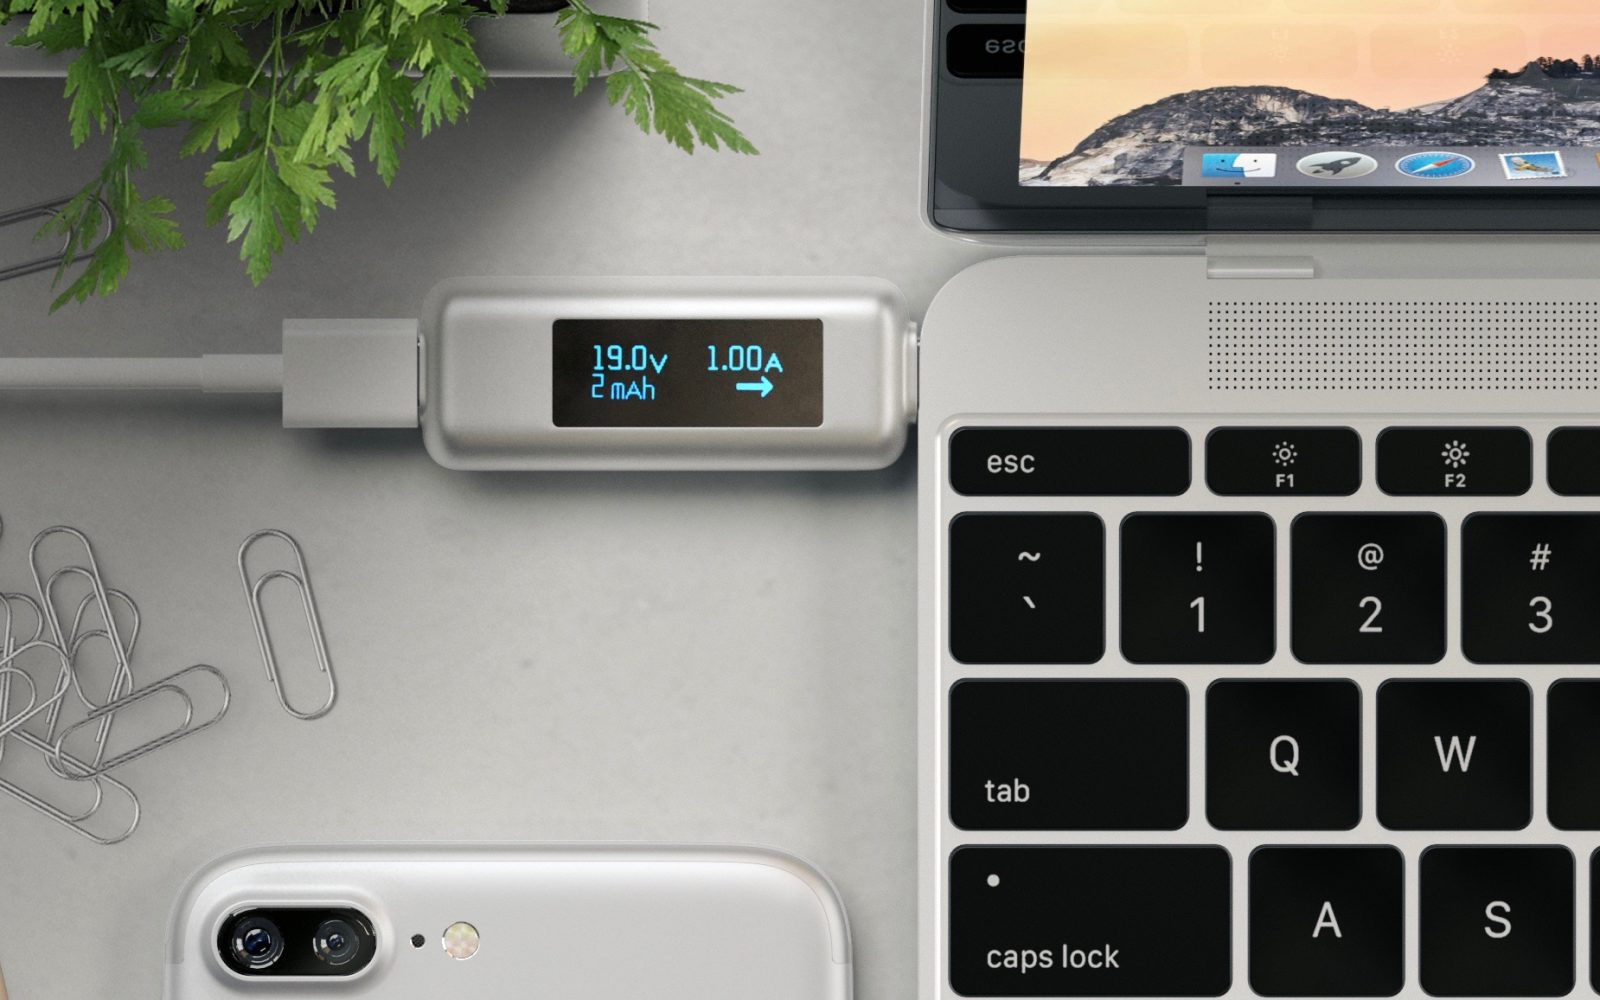 Satechi's new USB-C Power Meter can detect faulty cables and chargers before they damage your MacBook